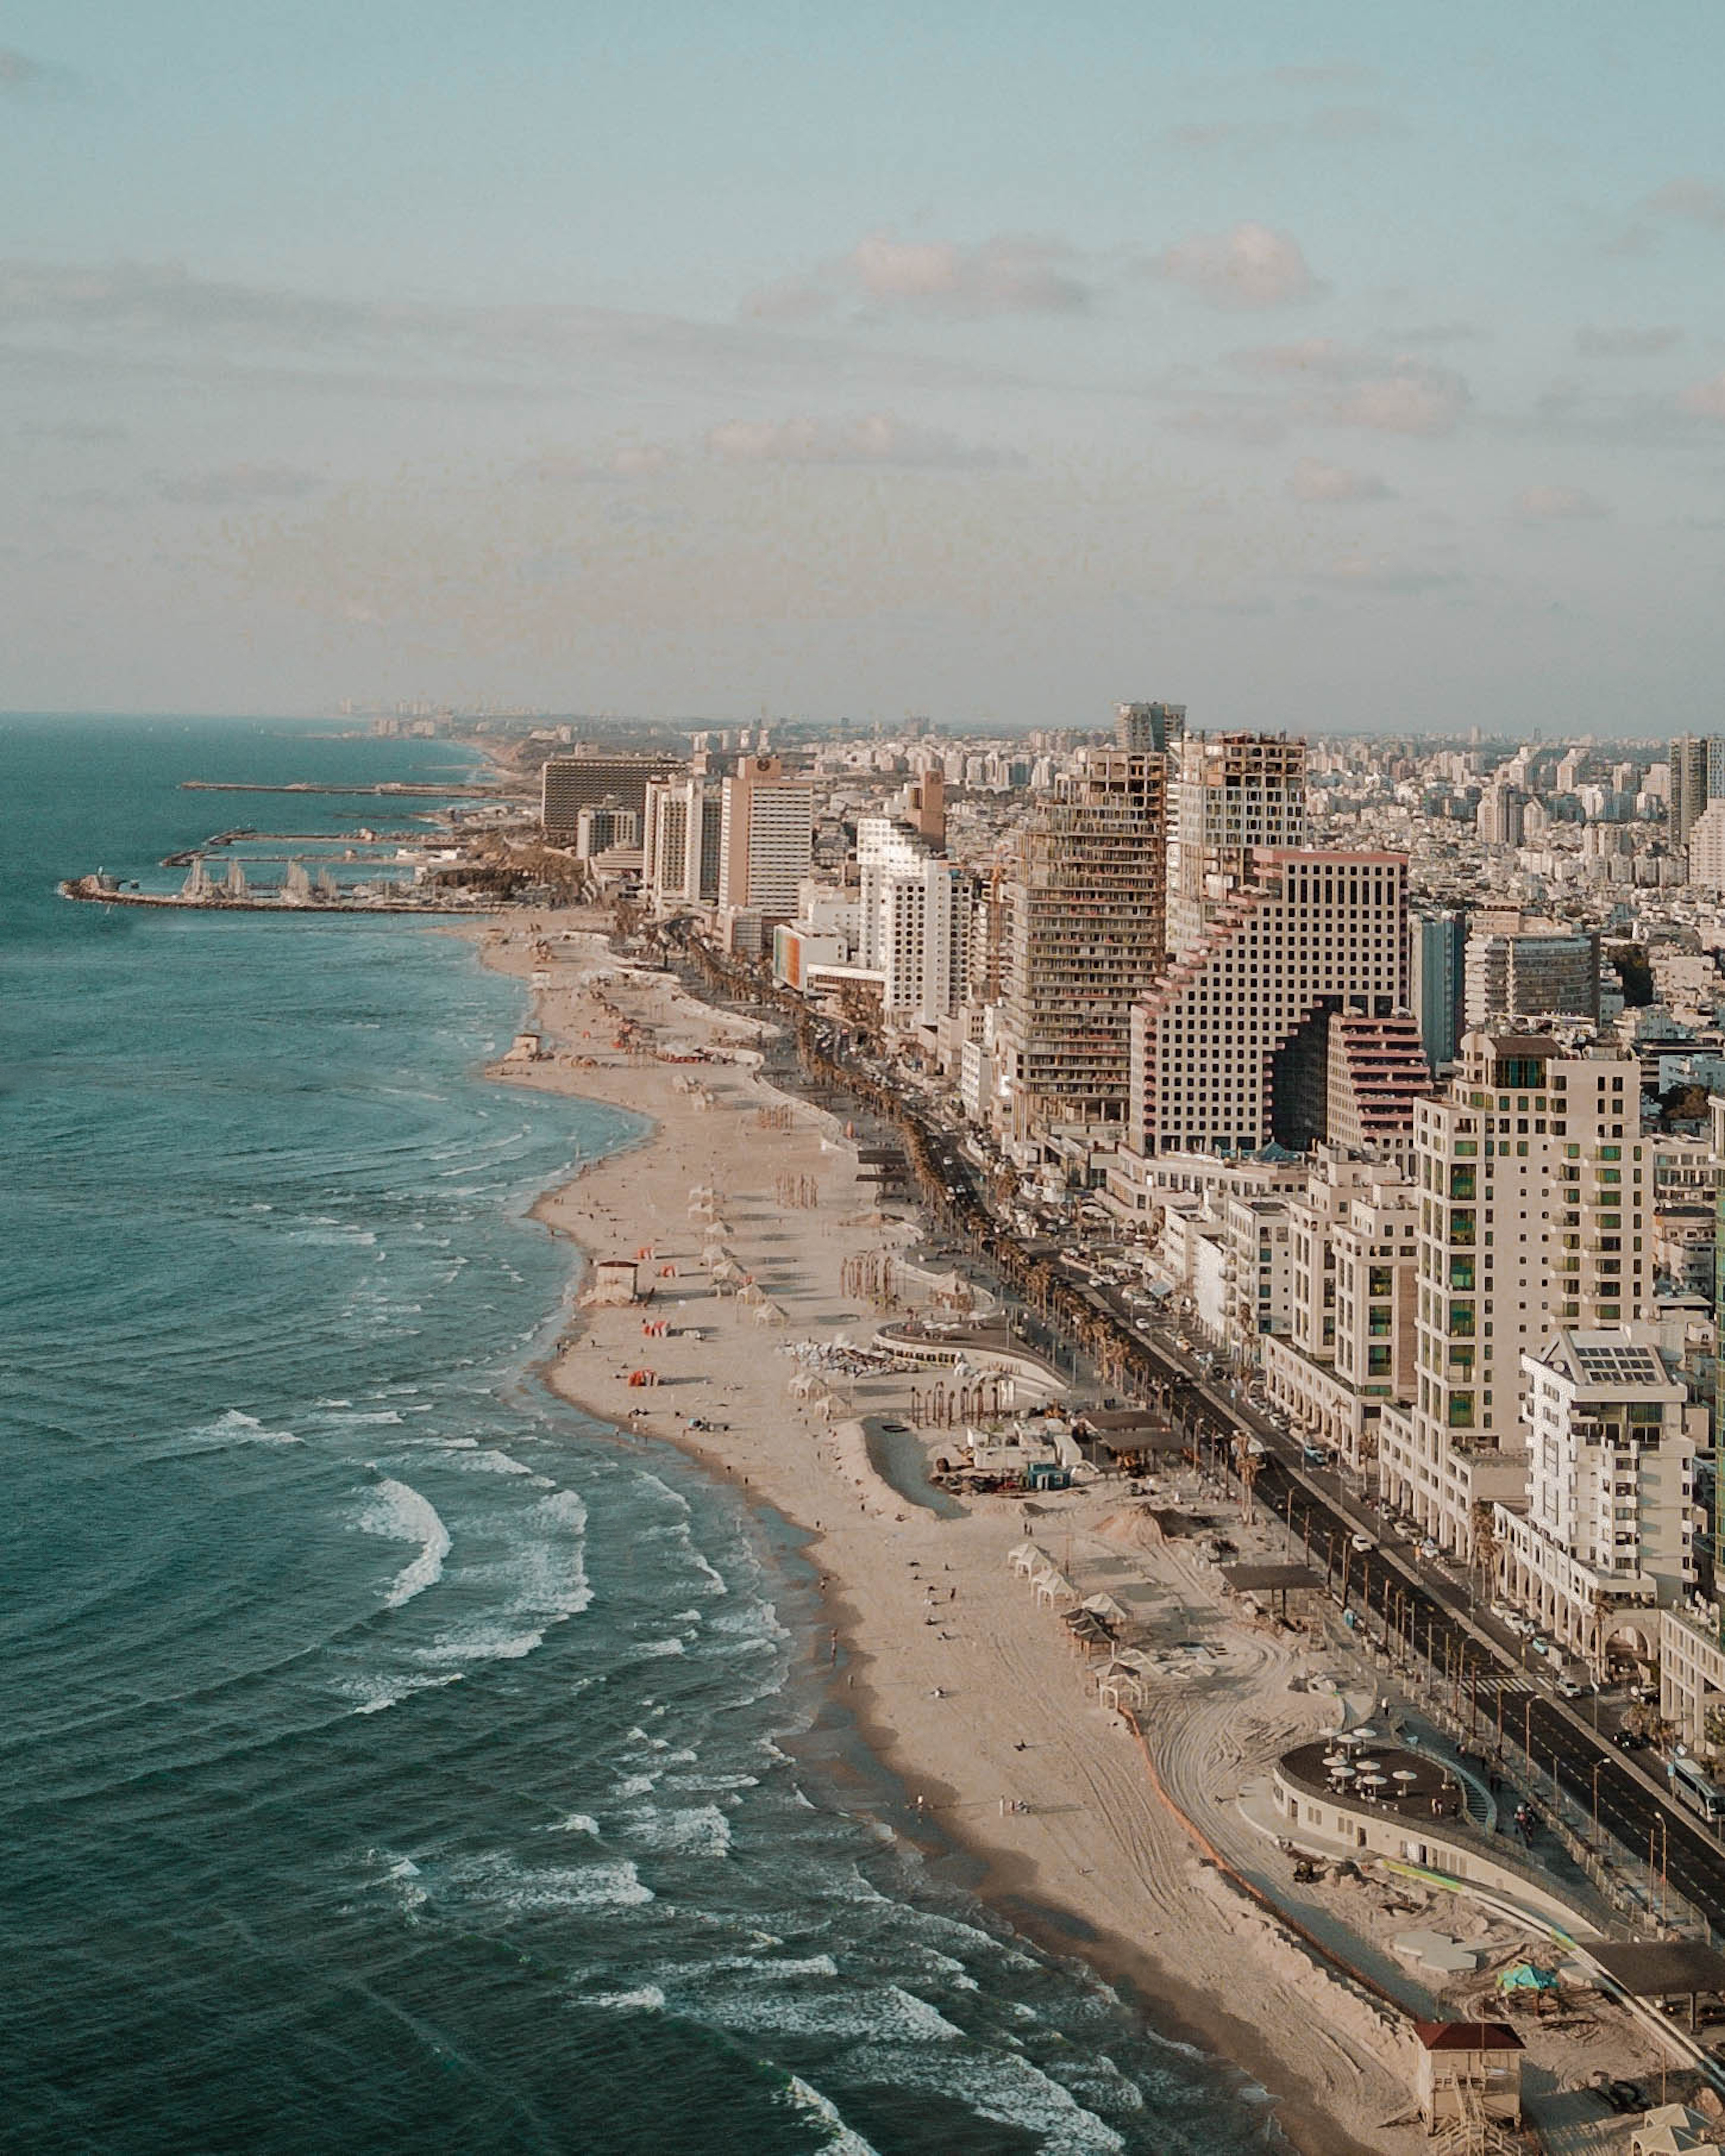 Cheap Flights From Dublin, Ireland To Tel Aviv, Israel For Only €204 Round Trip With KLM